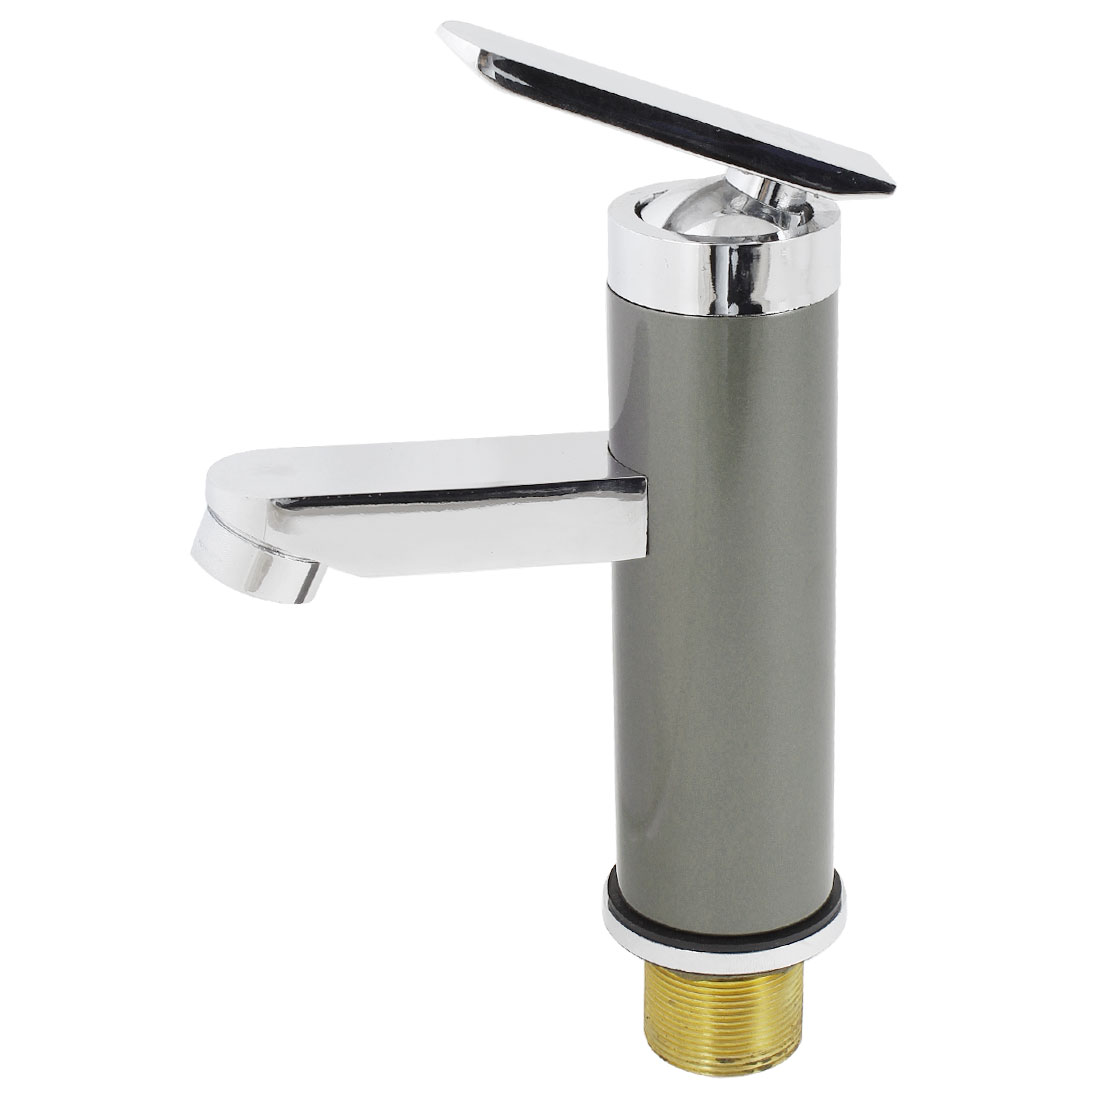 Basin Bathroom Single Handle Mixer Brass Faucet Water Tap Gray w Flexible Hoses